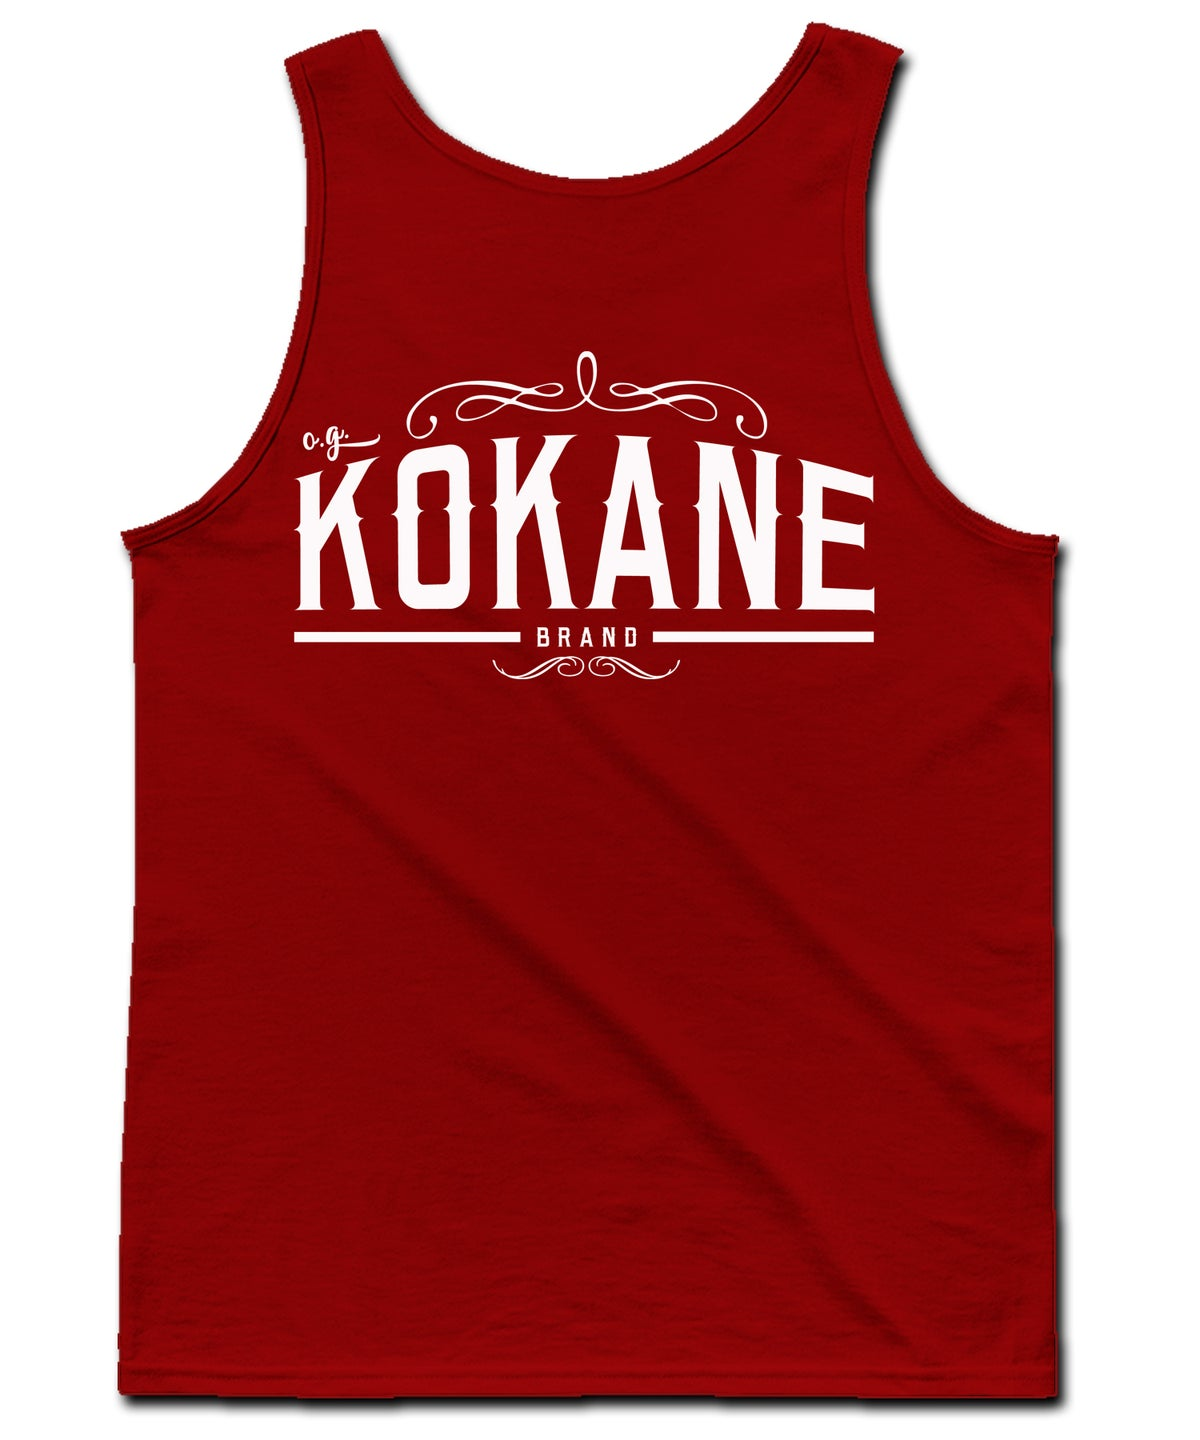 Image of O.G. KOKANE TANK TOP